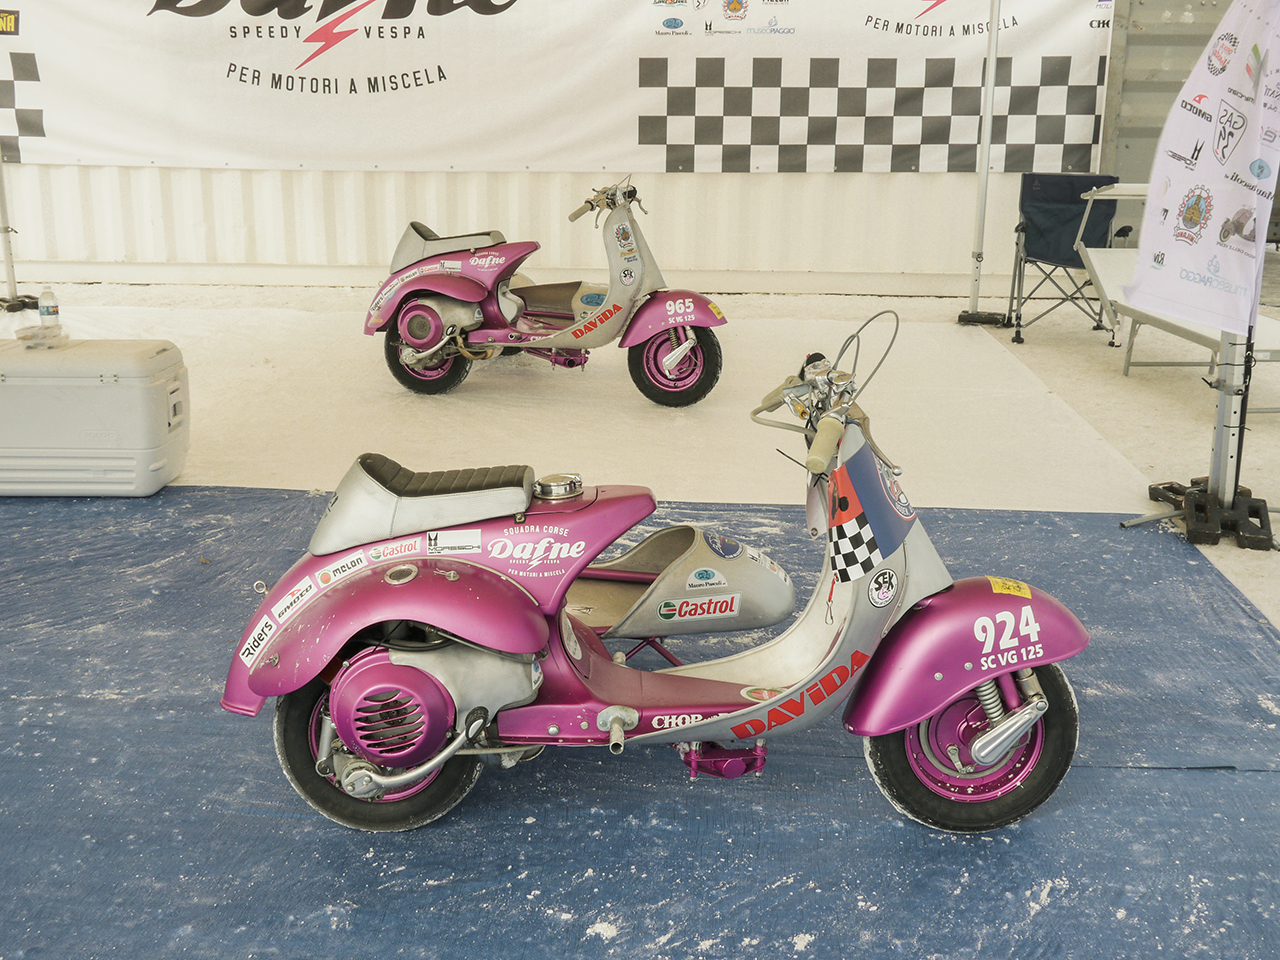 Team Dafne brought the first Vespas to be raced at Bonneville all the way from Italy. The alloy bodywork is just amazing.